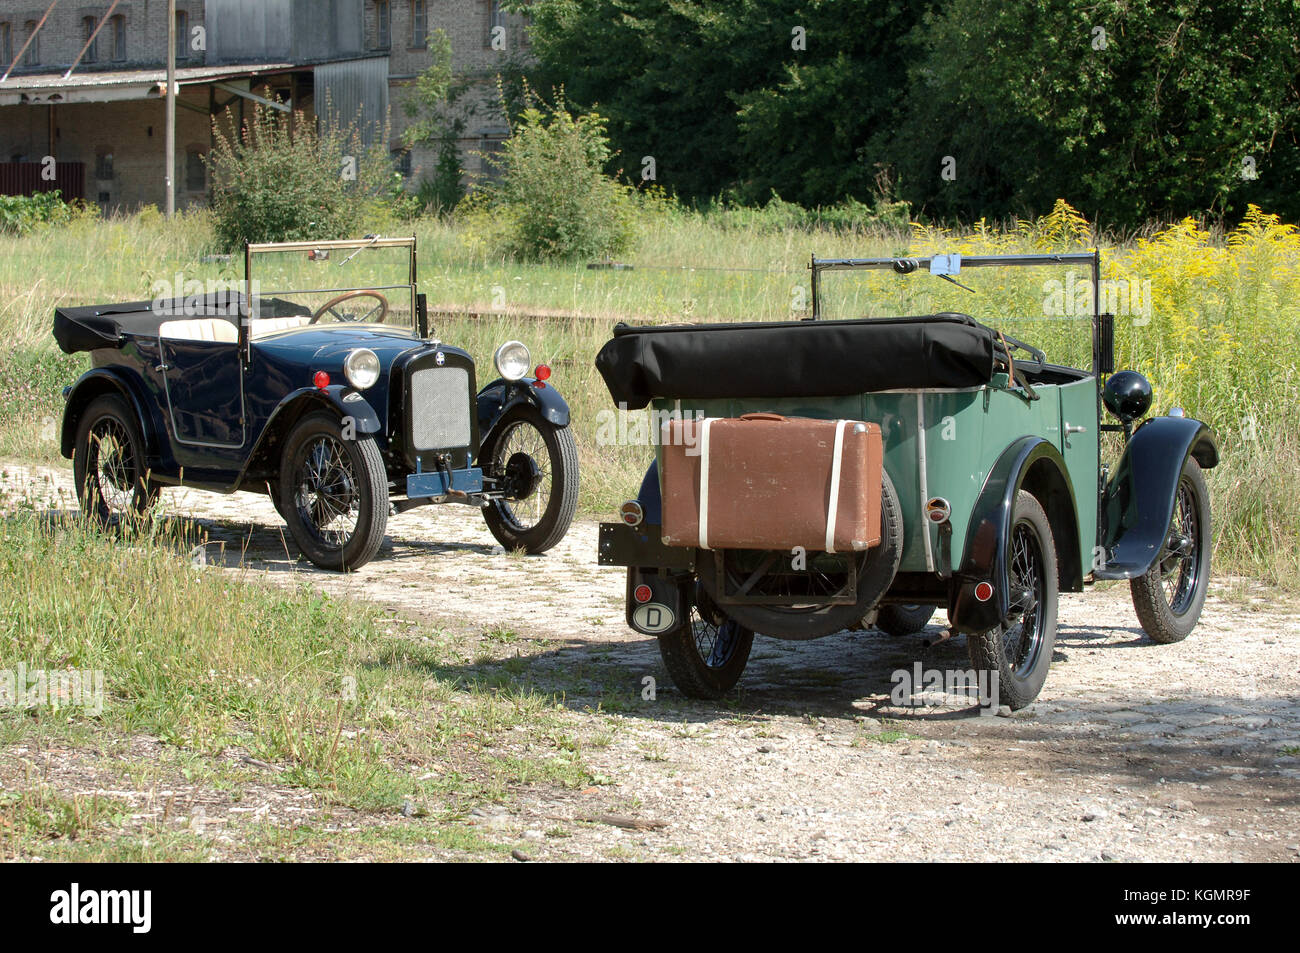 Bugatti Stock Photos and Pictures   Getty Images